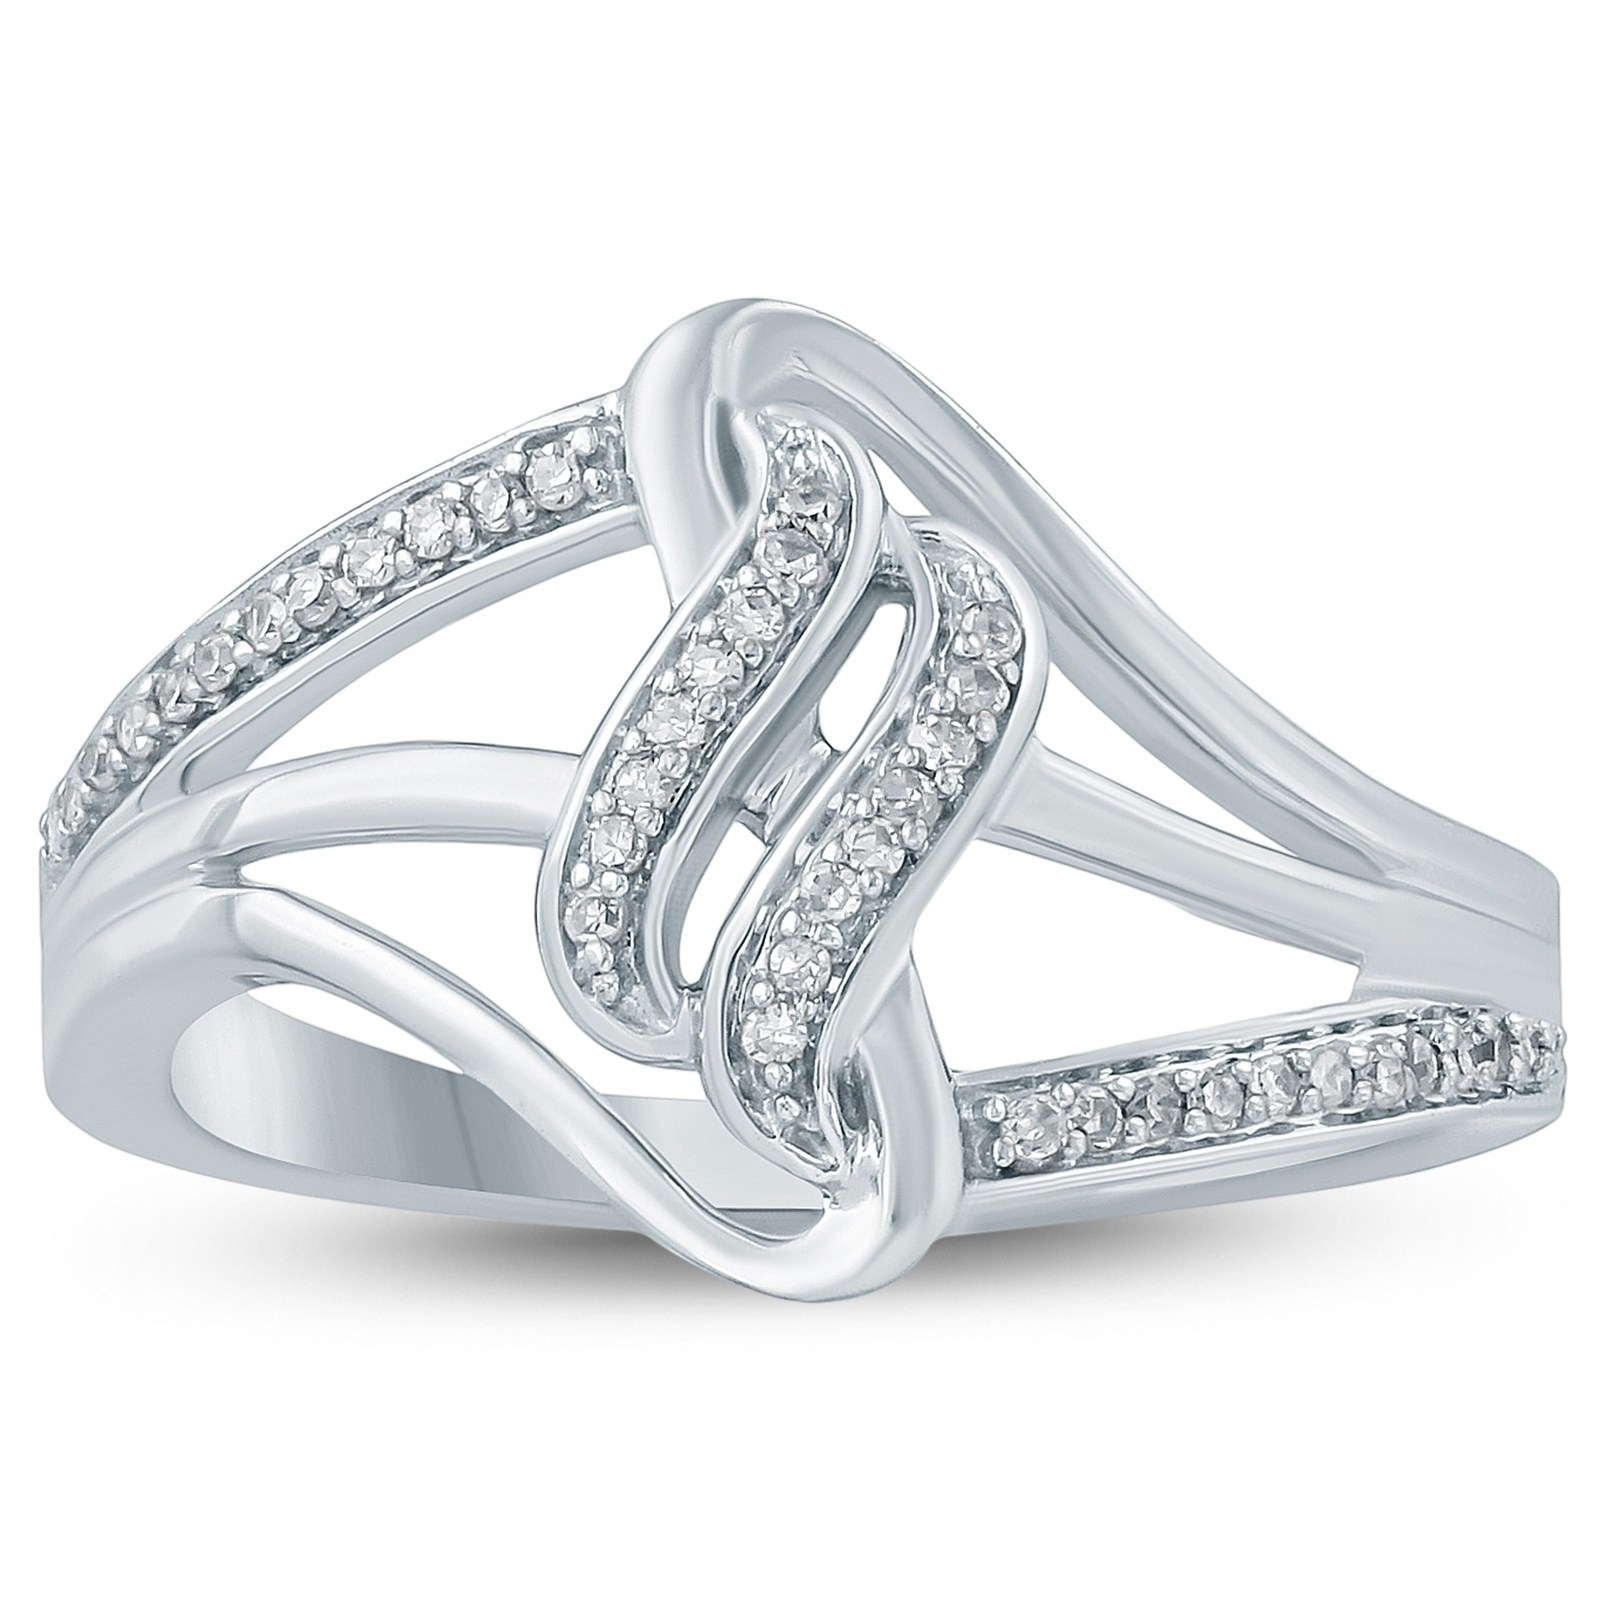 Featured Photo of Diamond Wave Vintage Style Anniversary Bands In 10K White Gold